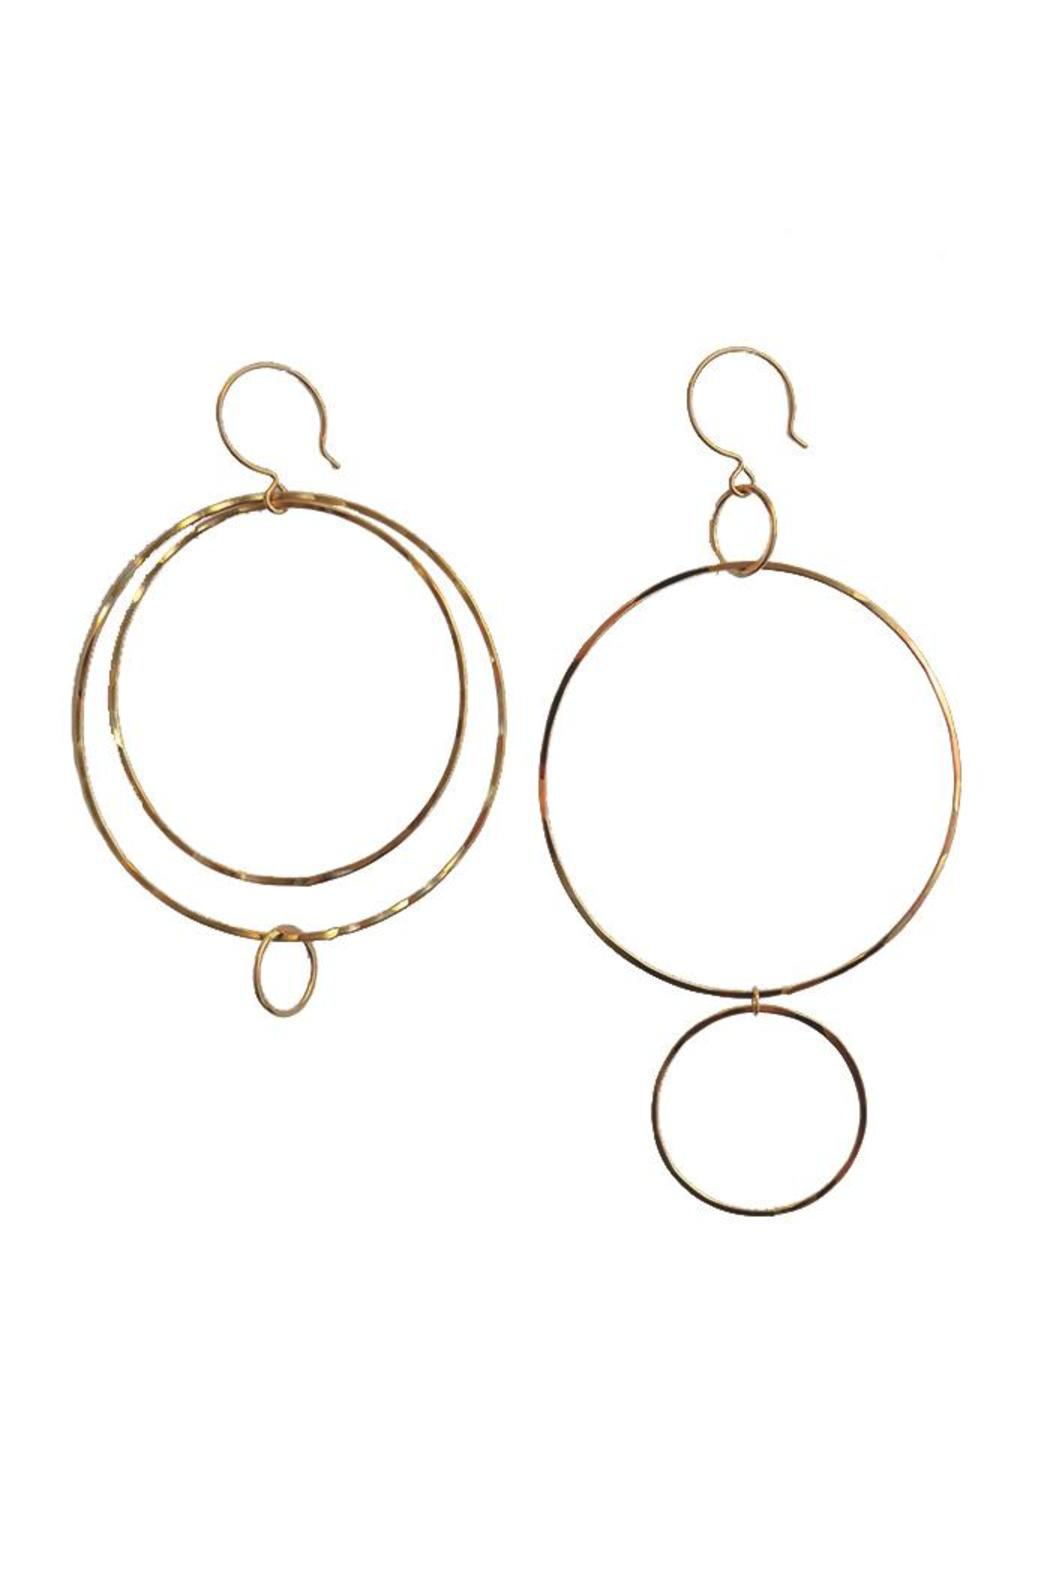 Kate Jack Jewelry Off Million Hoop Earrings - Main Image